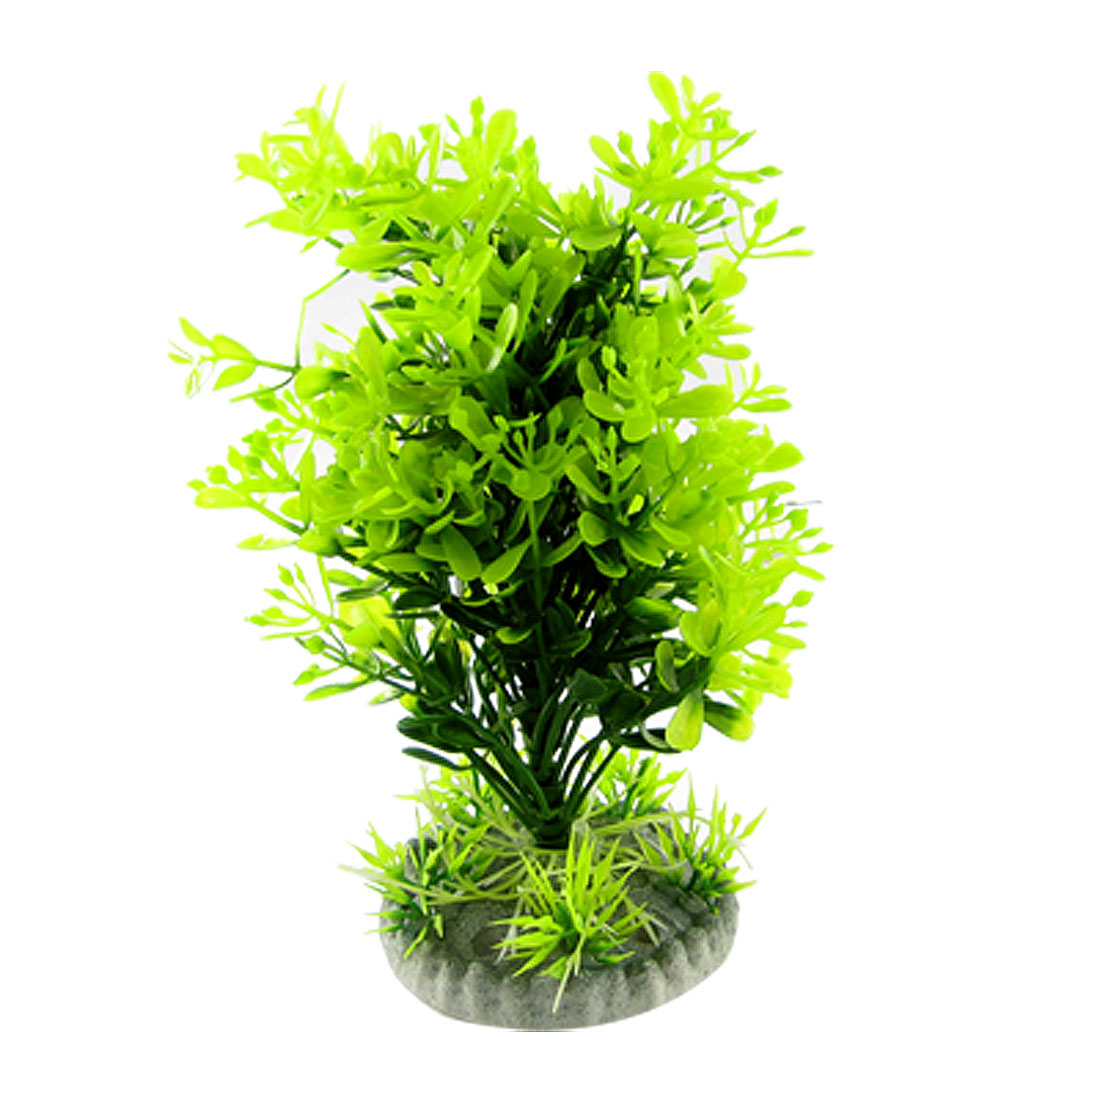 Green Artifical Plastic Plants Grass Ornaments for Aquarium Fish Tank